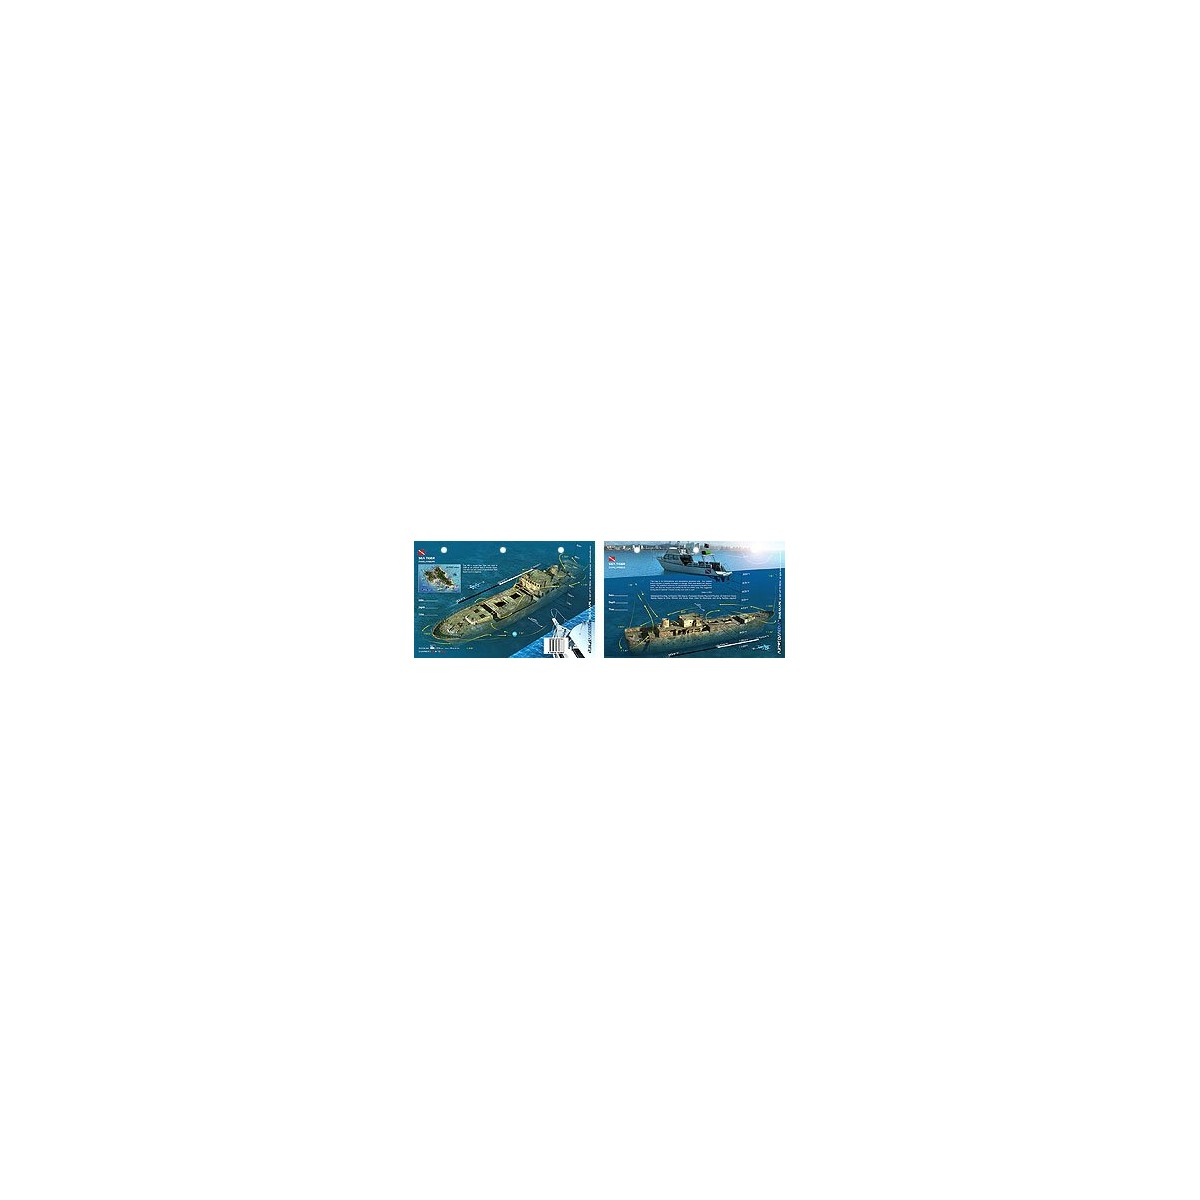 Sea Tiger in Oahu, Hawaii (8.5 x 5.5 Inches) (21.6 x 15cm) - New Art to Media Underwater Waterproof 3D Dive Site Map